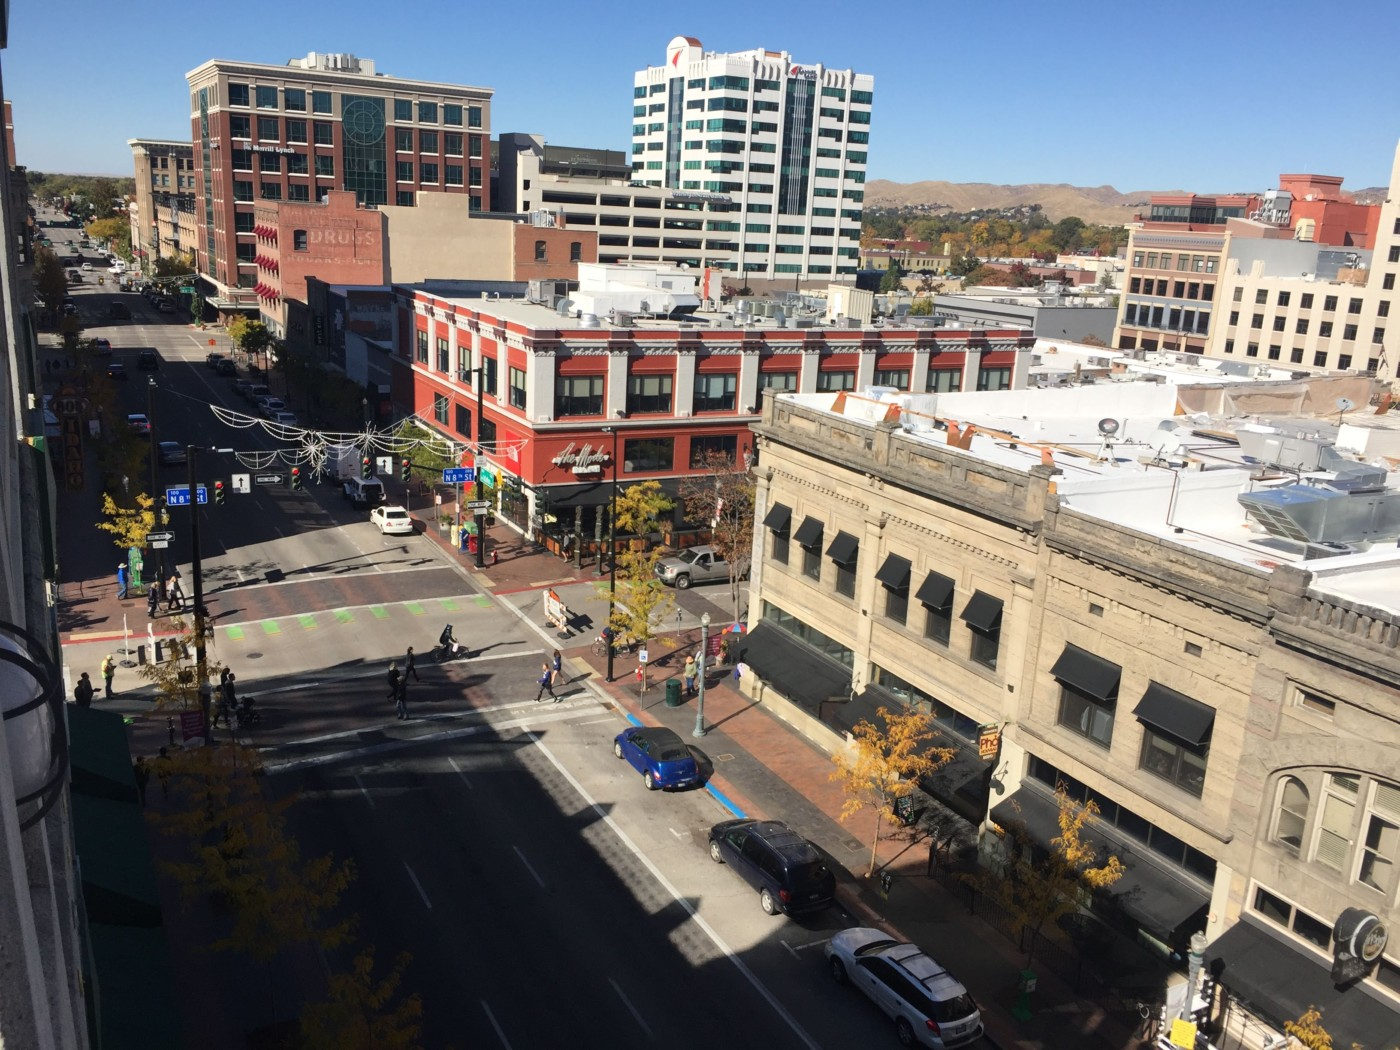 Downtown Boise, Idaho.